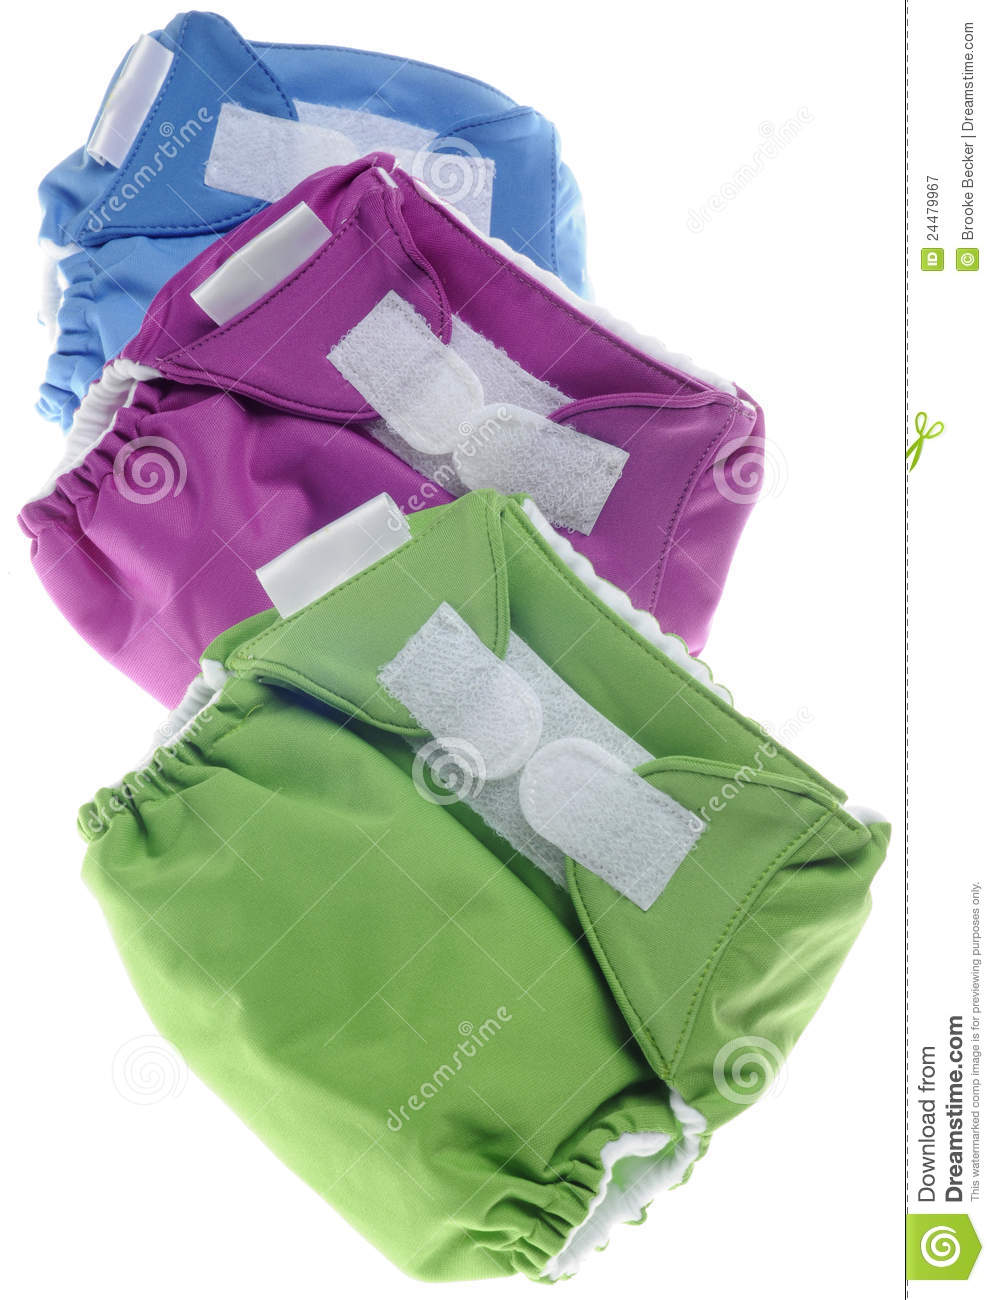 Cloth Diapers in Green, Purple and Blue